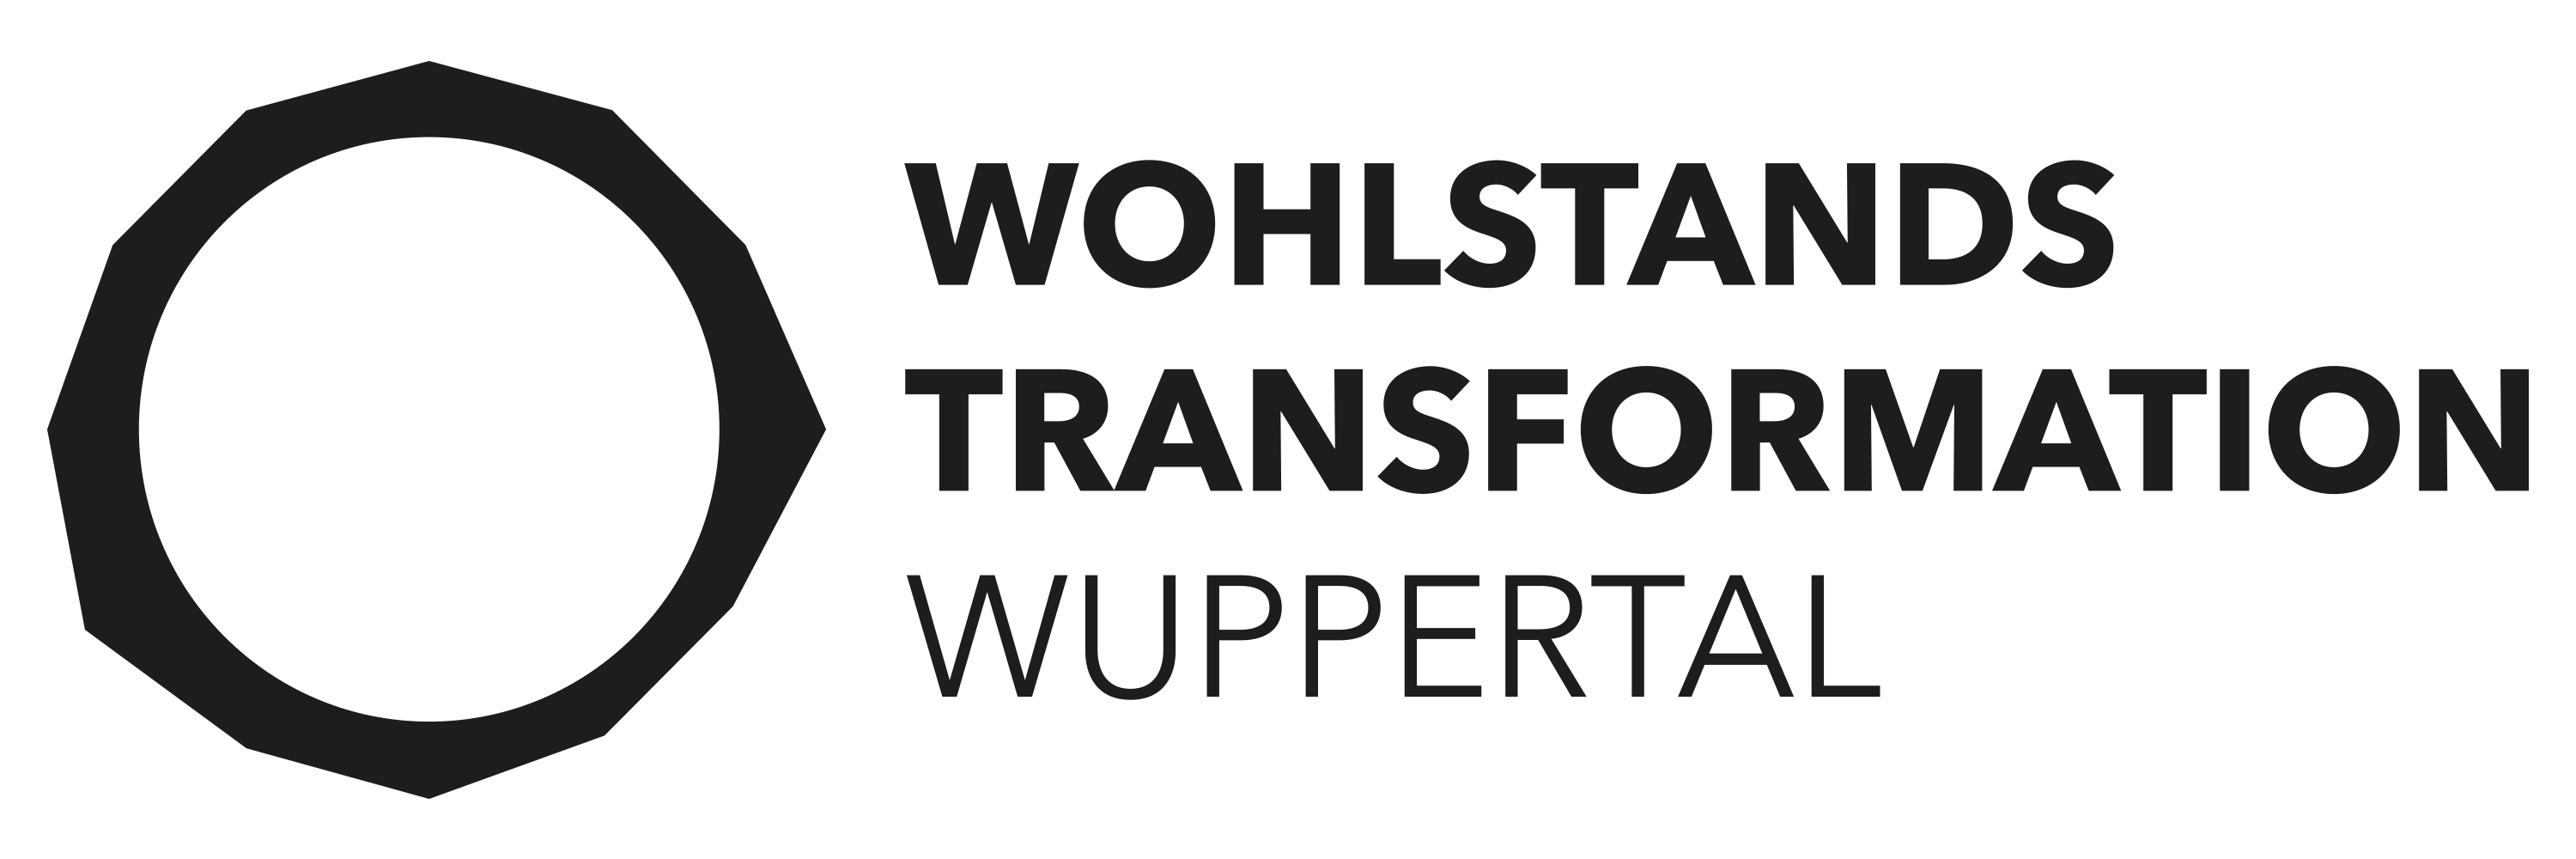 WOHLSTAND IN WUPPERTAL